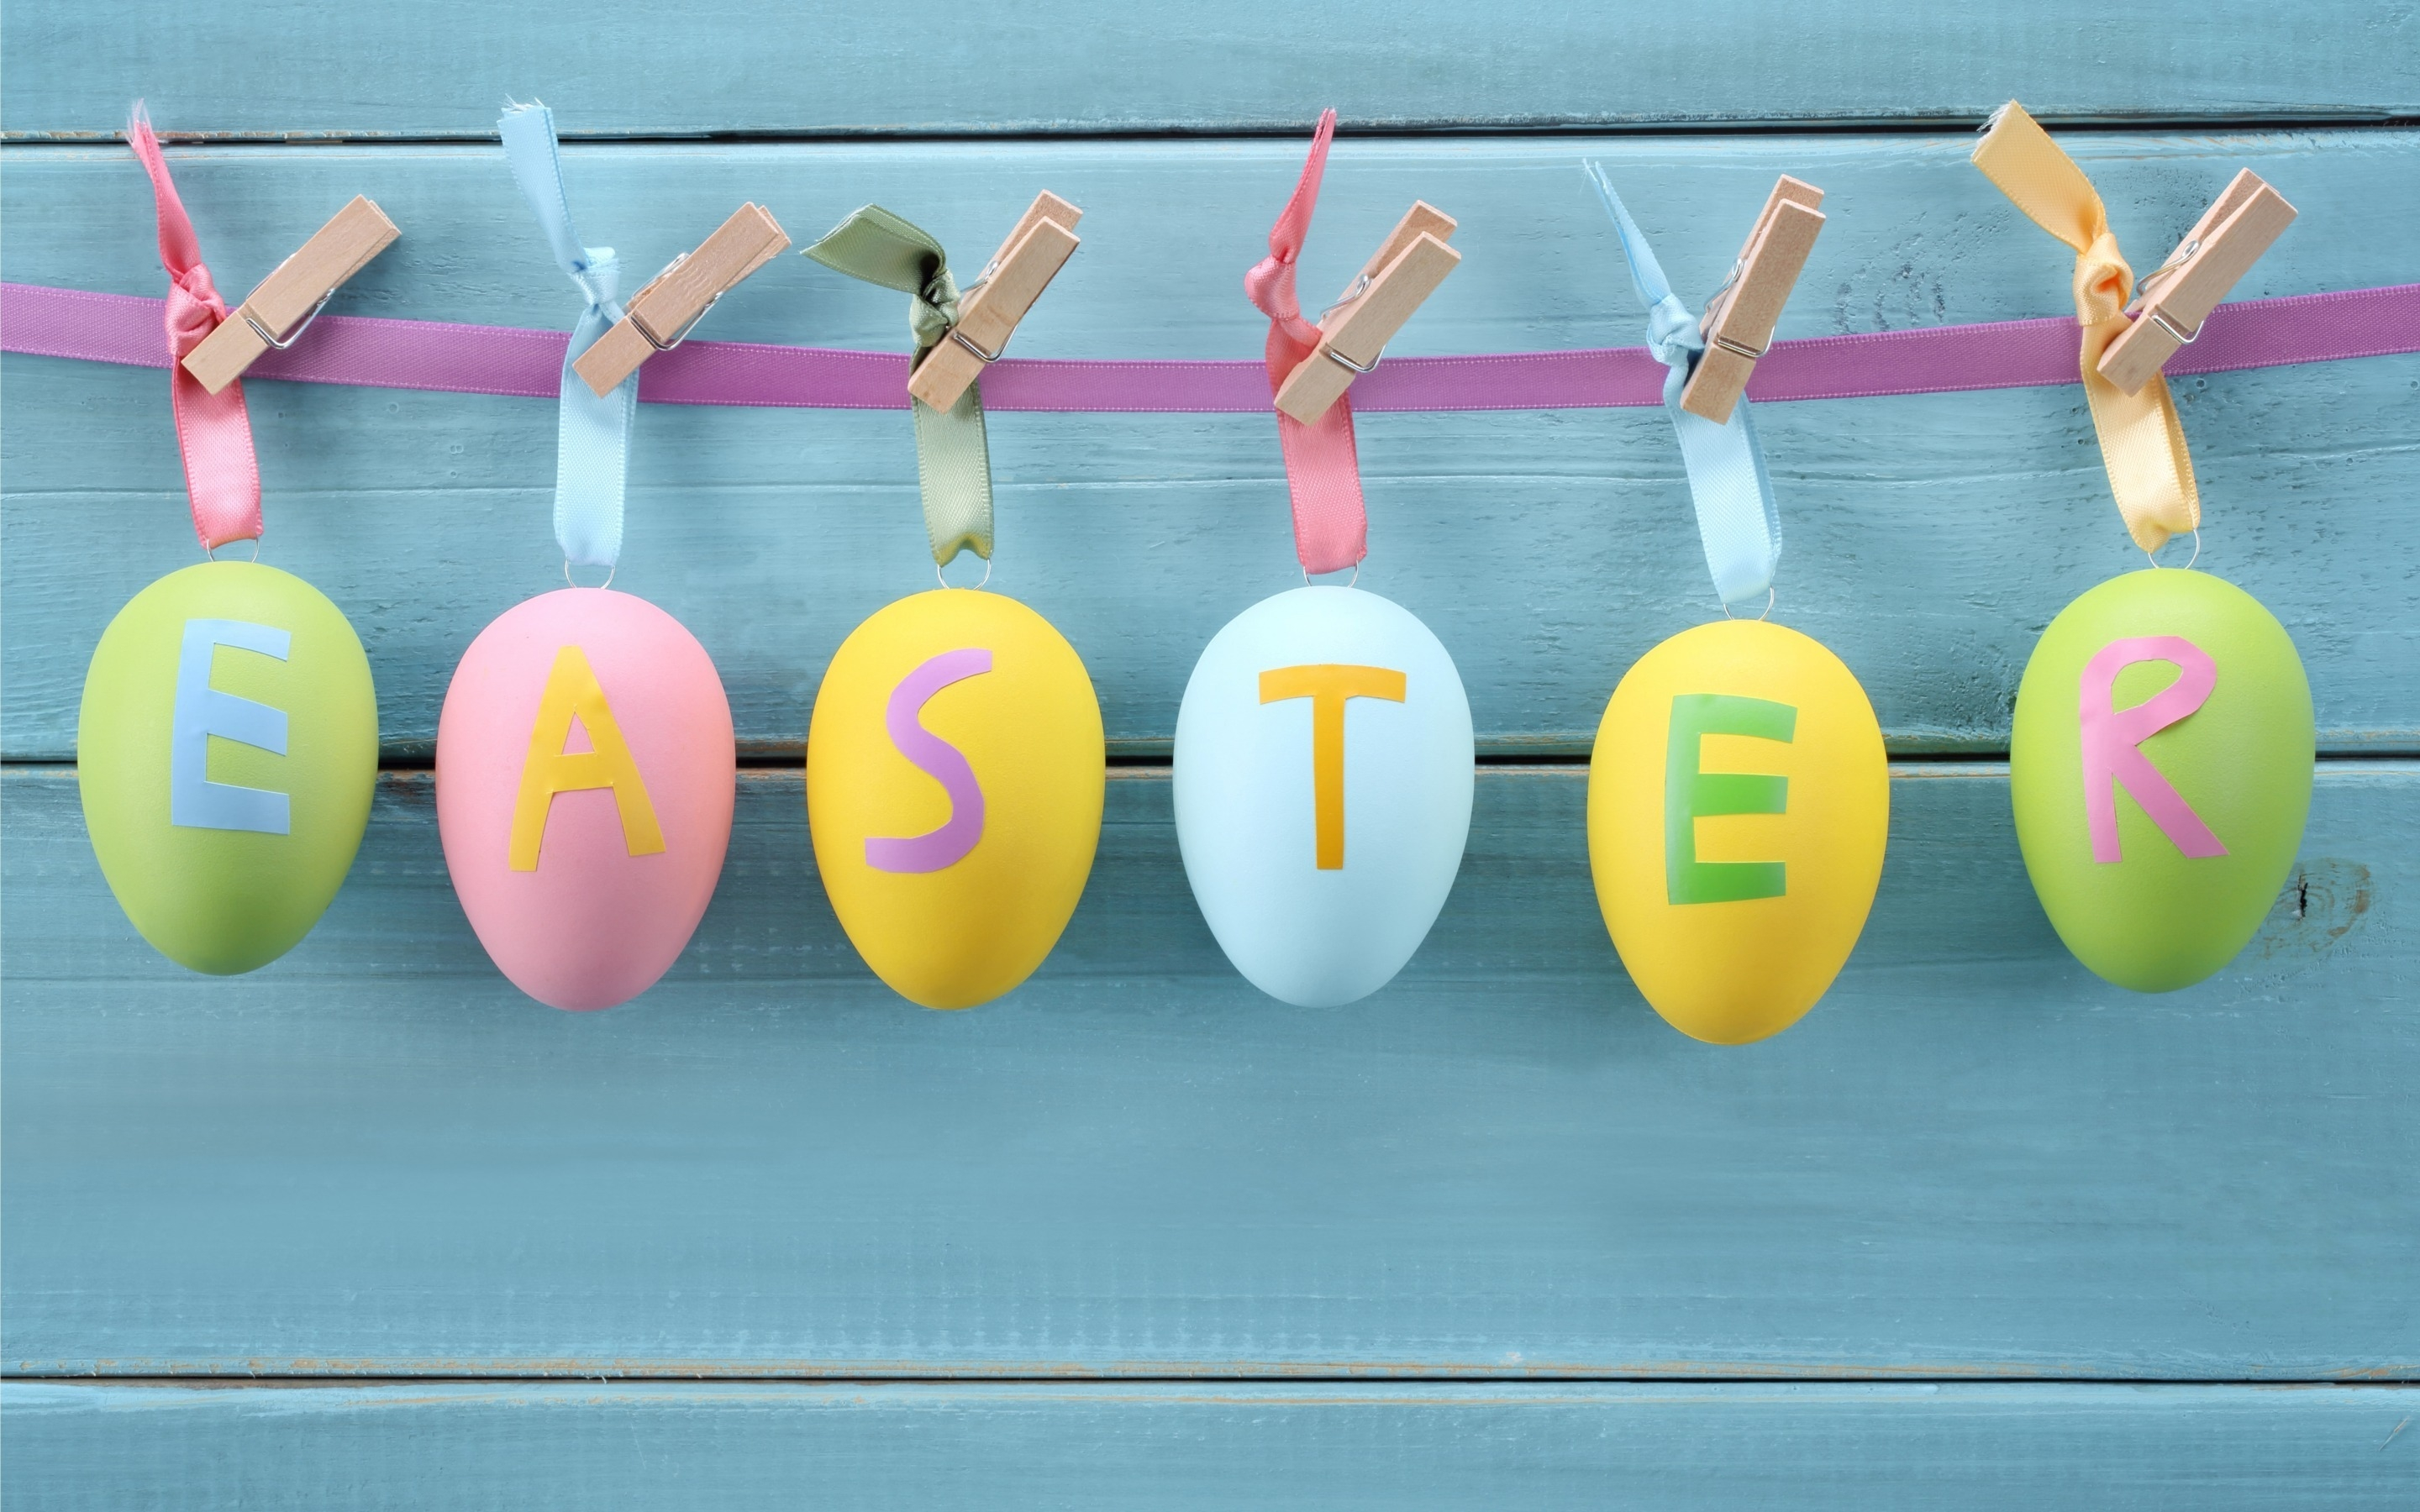 Easter Decorations for 2880 x 1800 Retina Display resolution